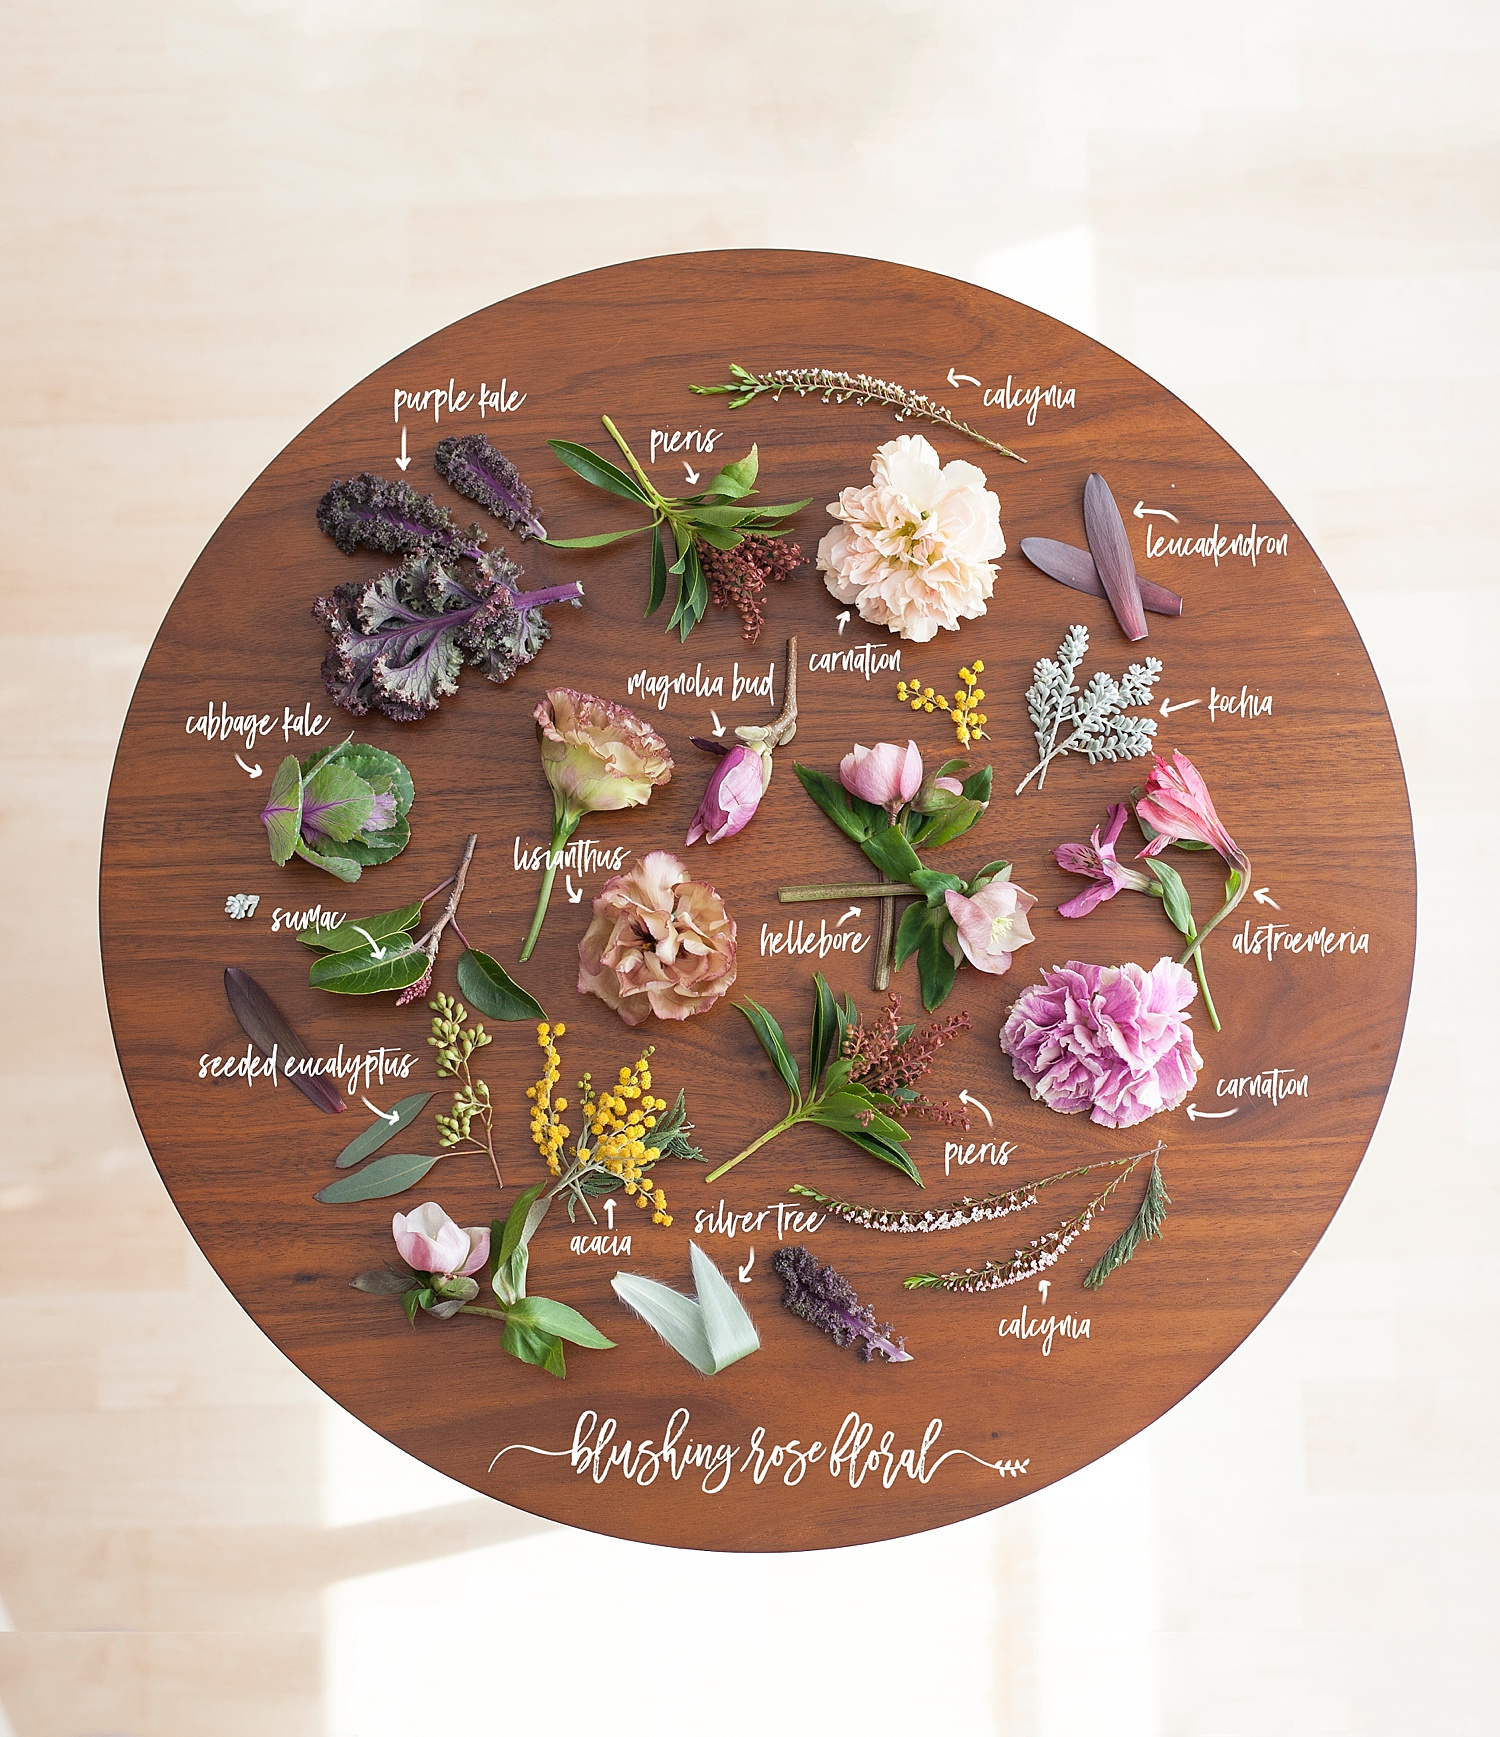 Textural bridal bouquet breakdown by Blushing Rose Floral